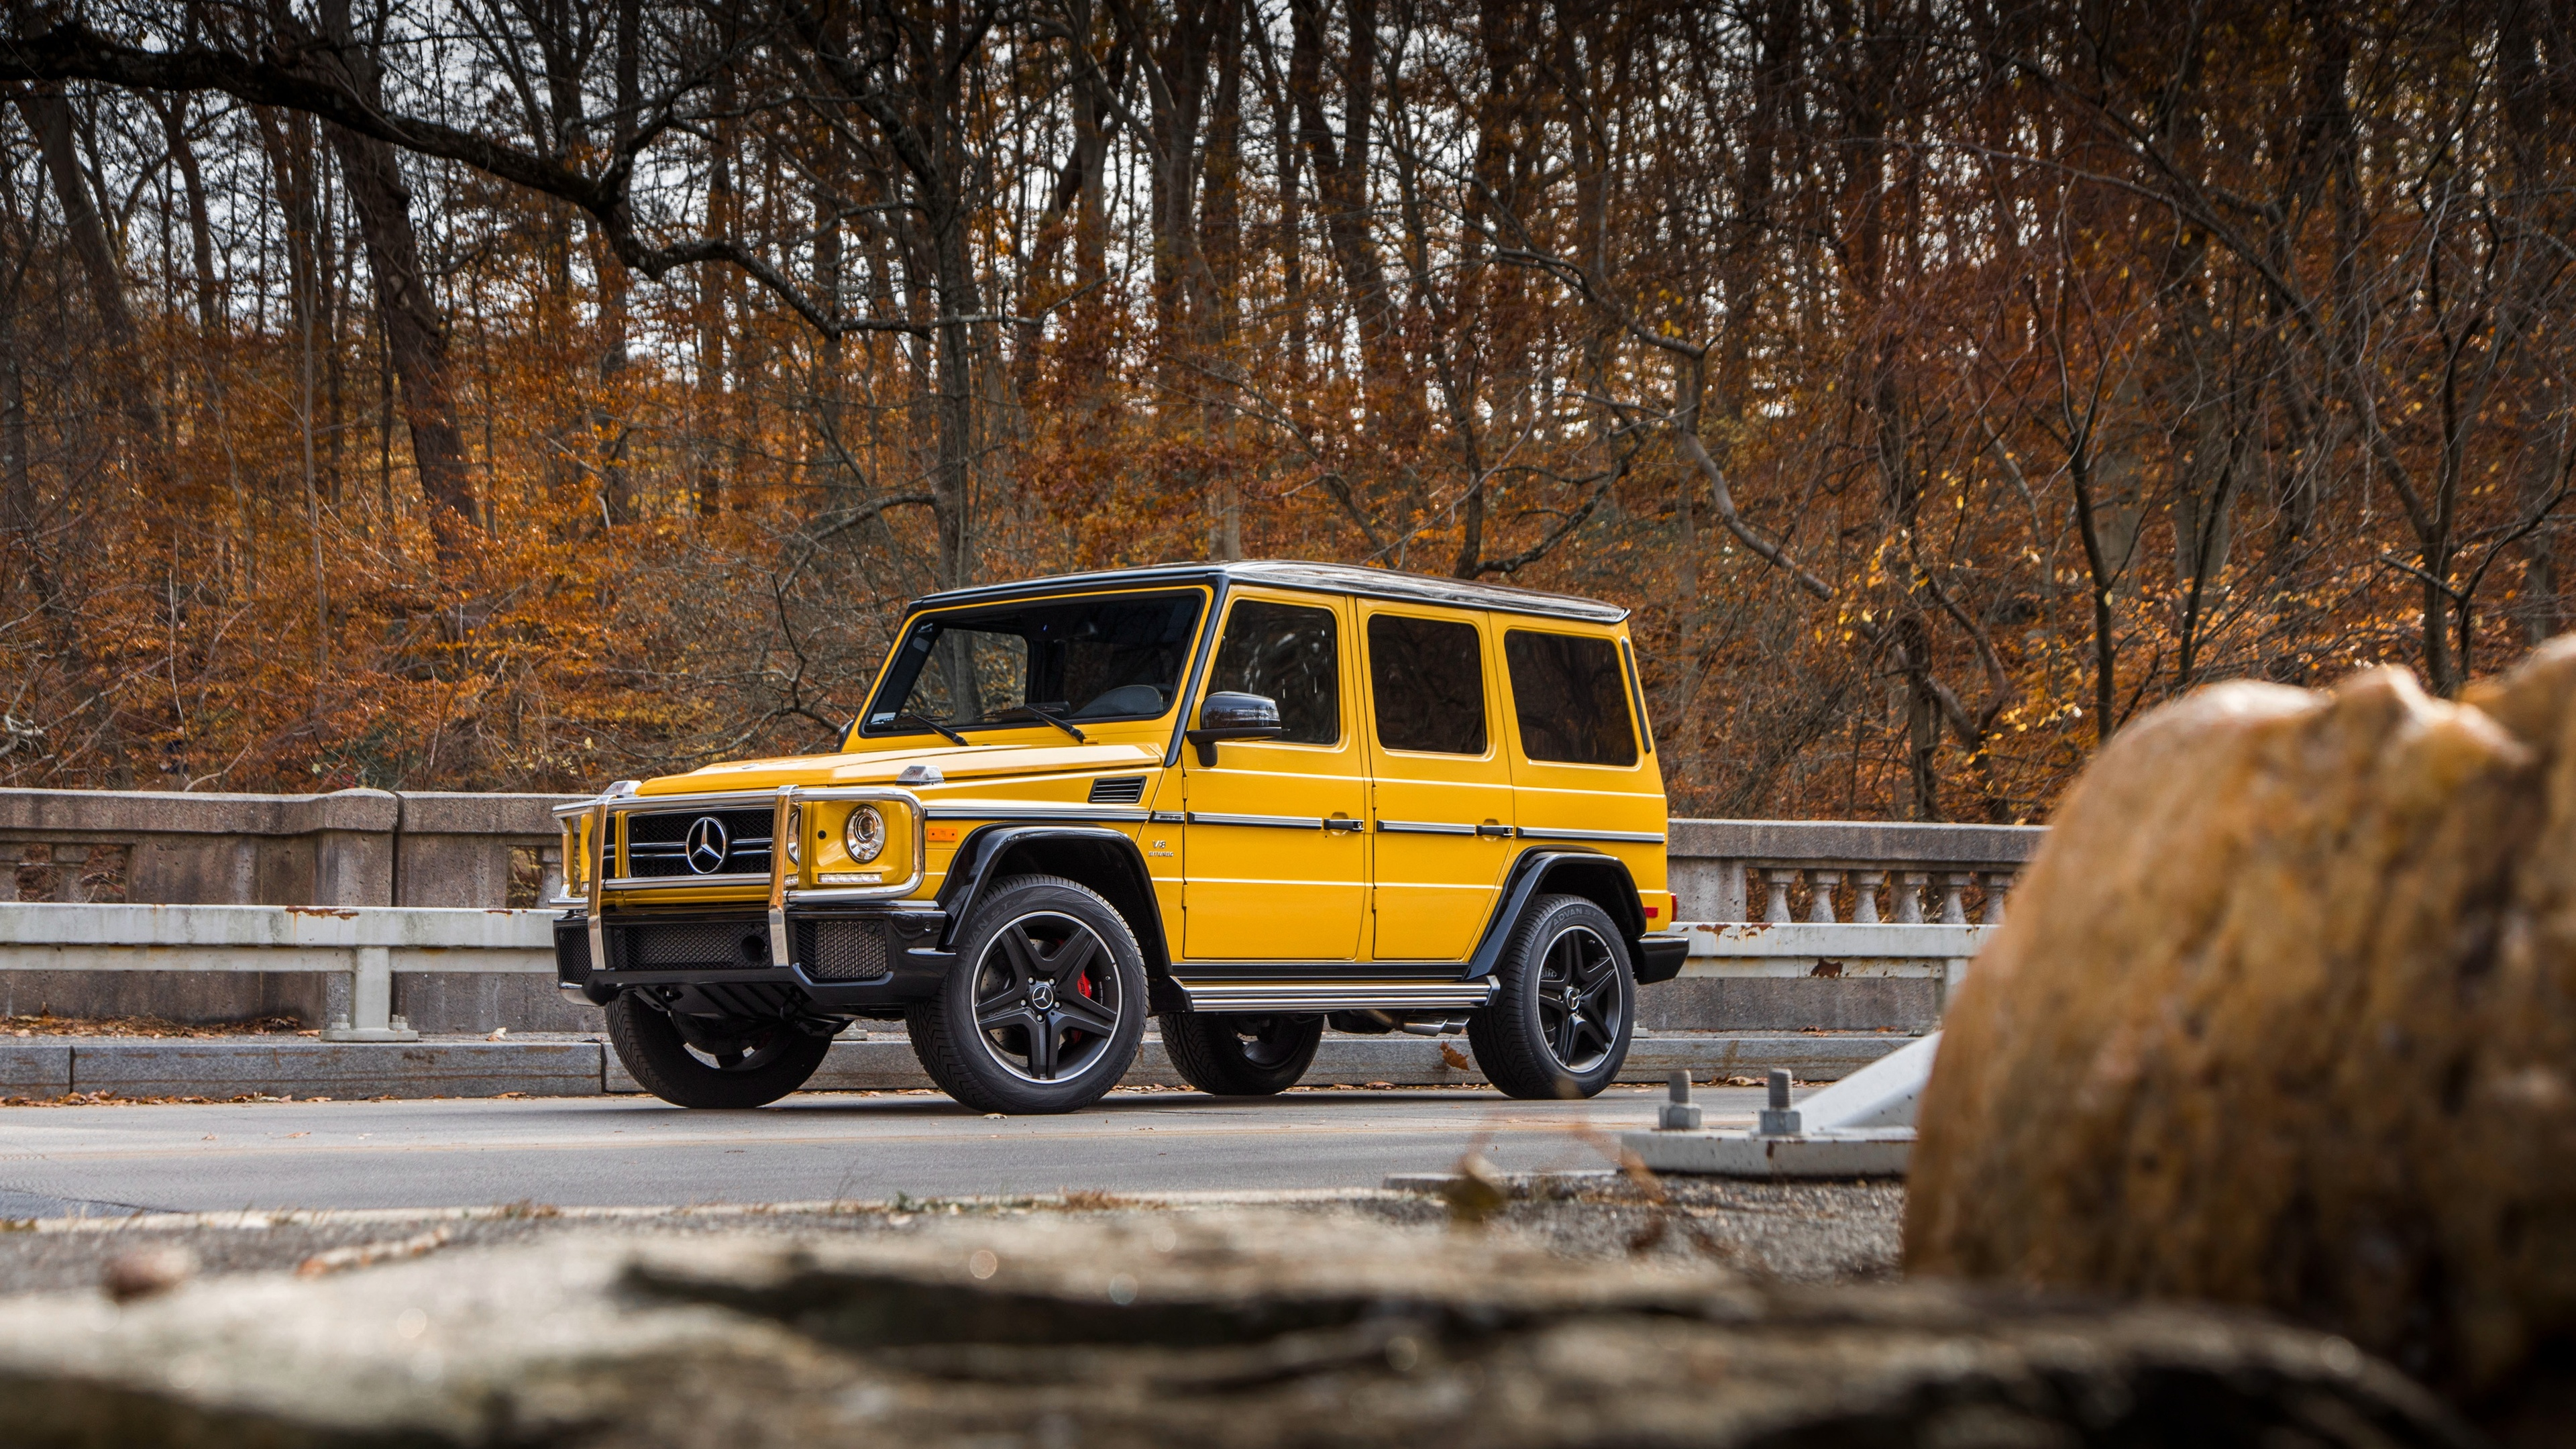 mercedes benz g class g63 1569188303 - Mercedes Benz G Class G63 - suv wallpapers, mercedes wallpapers, mercedes g class wallpapers, mercedes benz wallpapers, hd-wallpapers, cars wallpapers, 4k-wallpapers